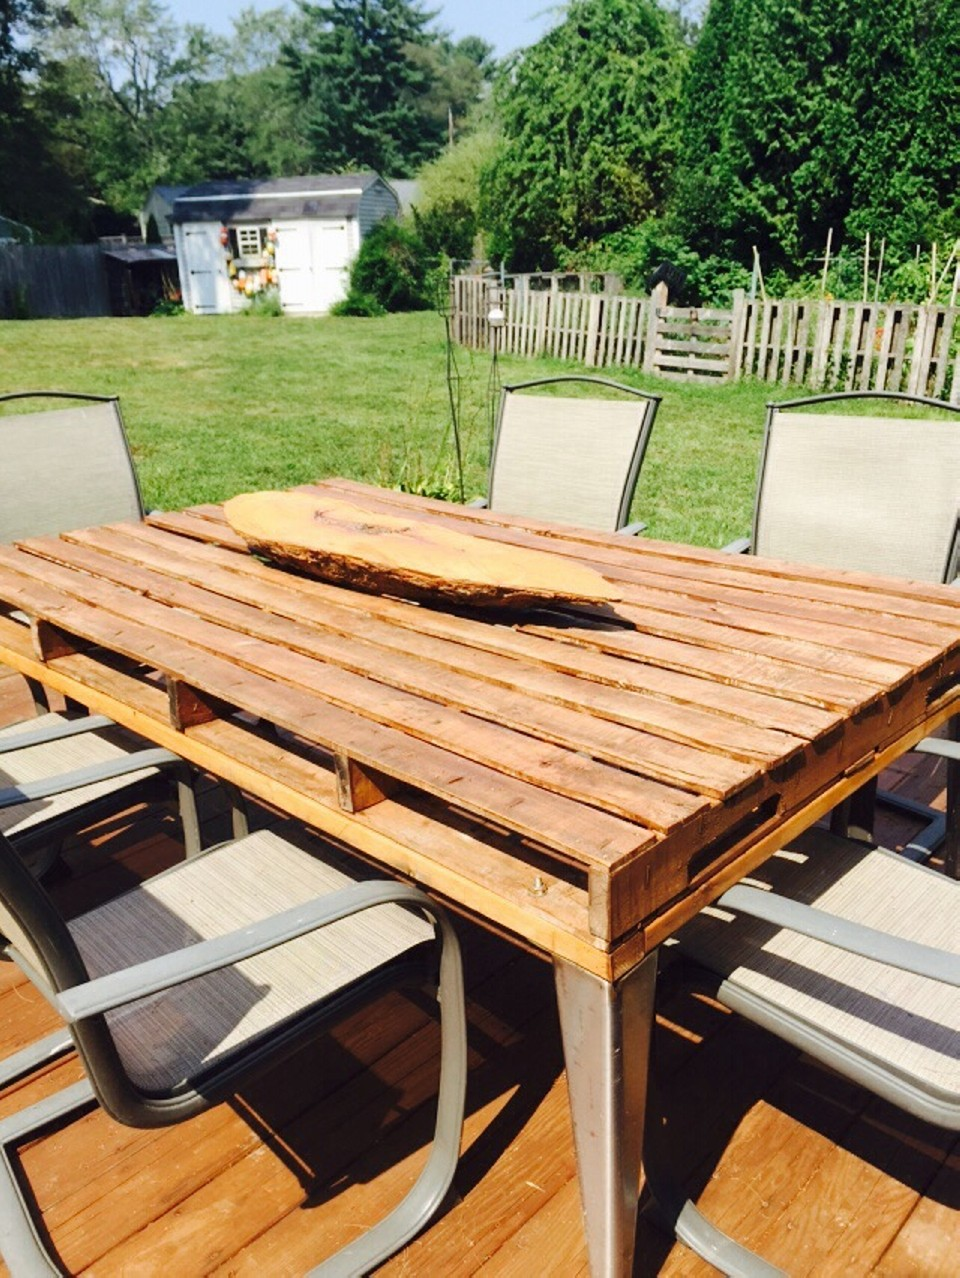 Patio Coffee Table Out Of Wooden Pallets Pallet Ideas Recycled Upcycled Pallets Furniture